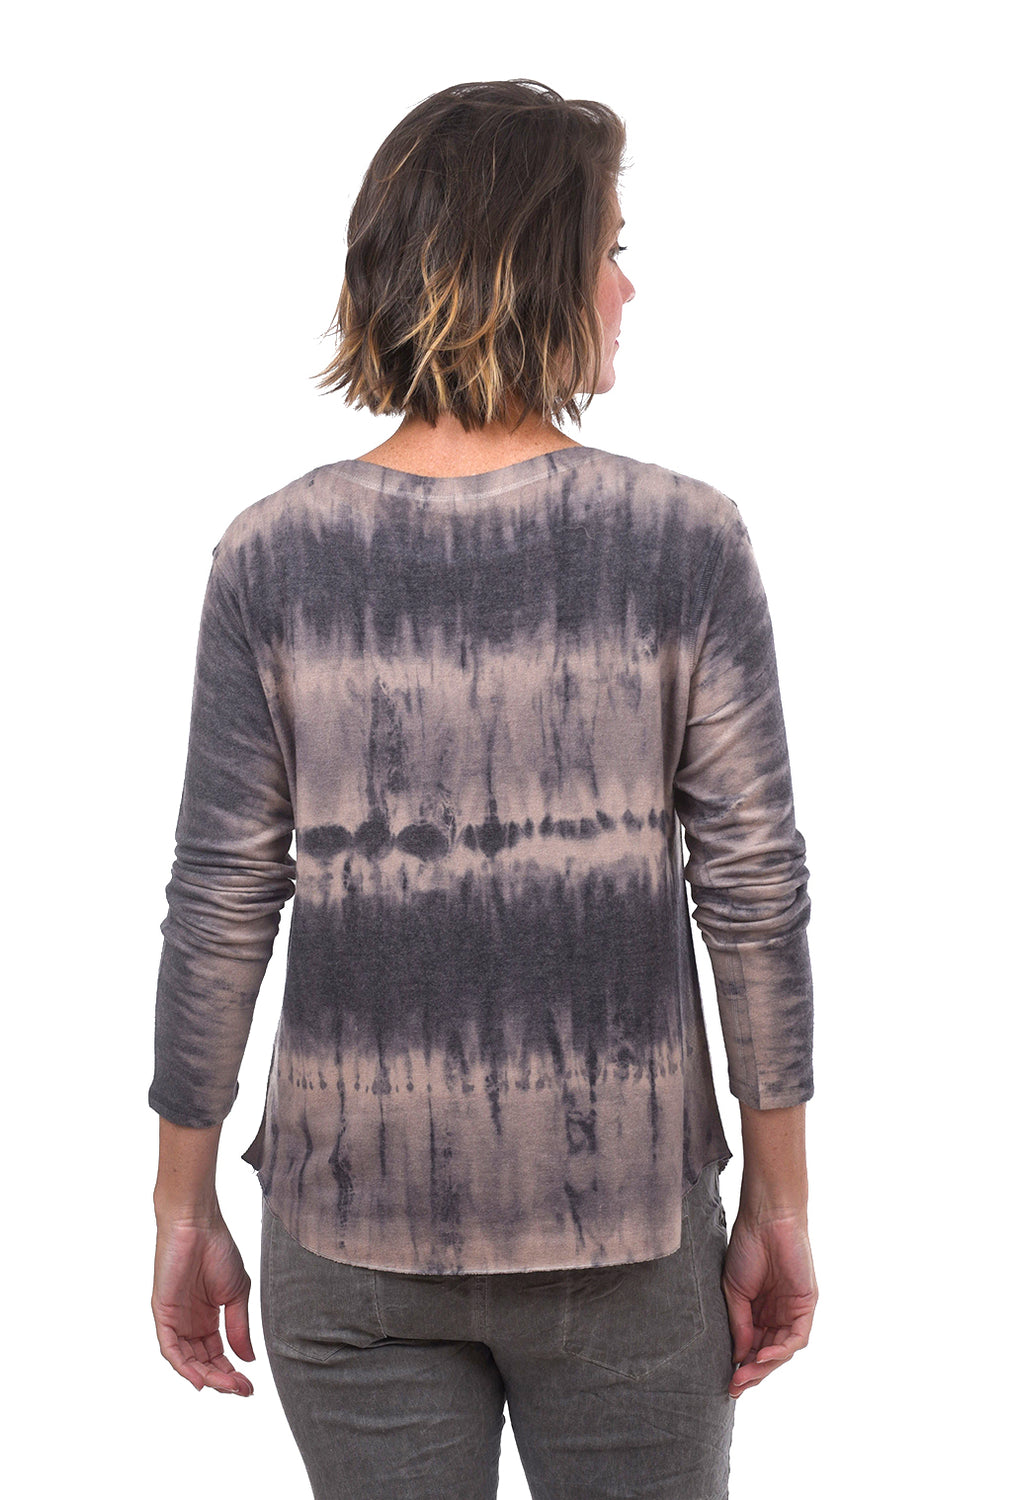 Brushed Reverse Dye Top, Toast